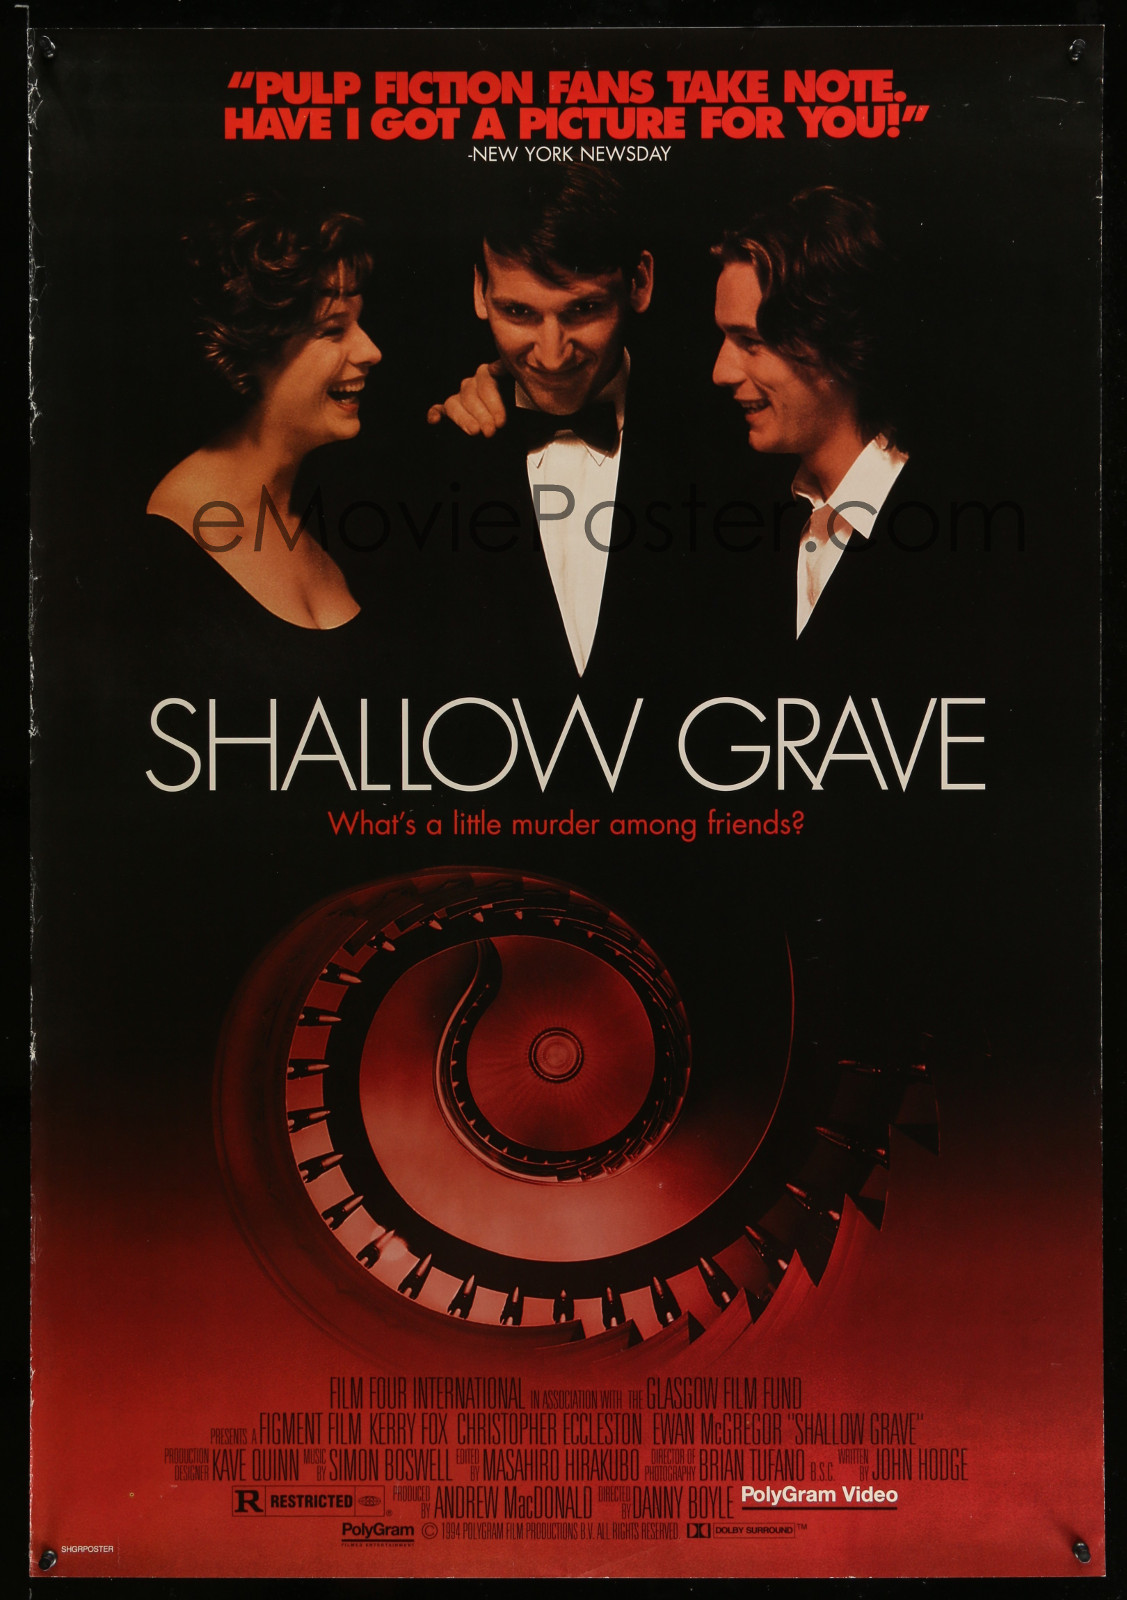 Shallow Grave 2A323 A Part Of A Lot 18 Unfolded Single-Sided Video Posters '90S A Variety Of Movie Images!